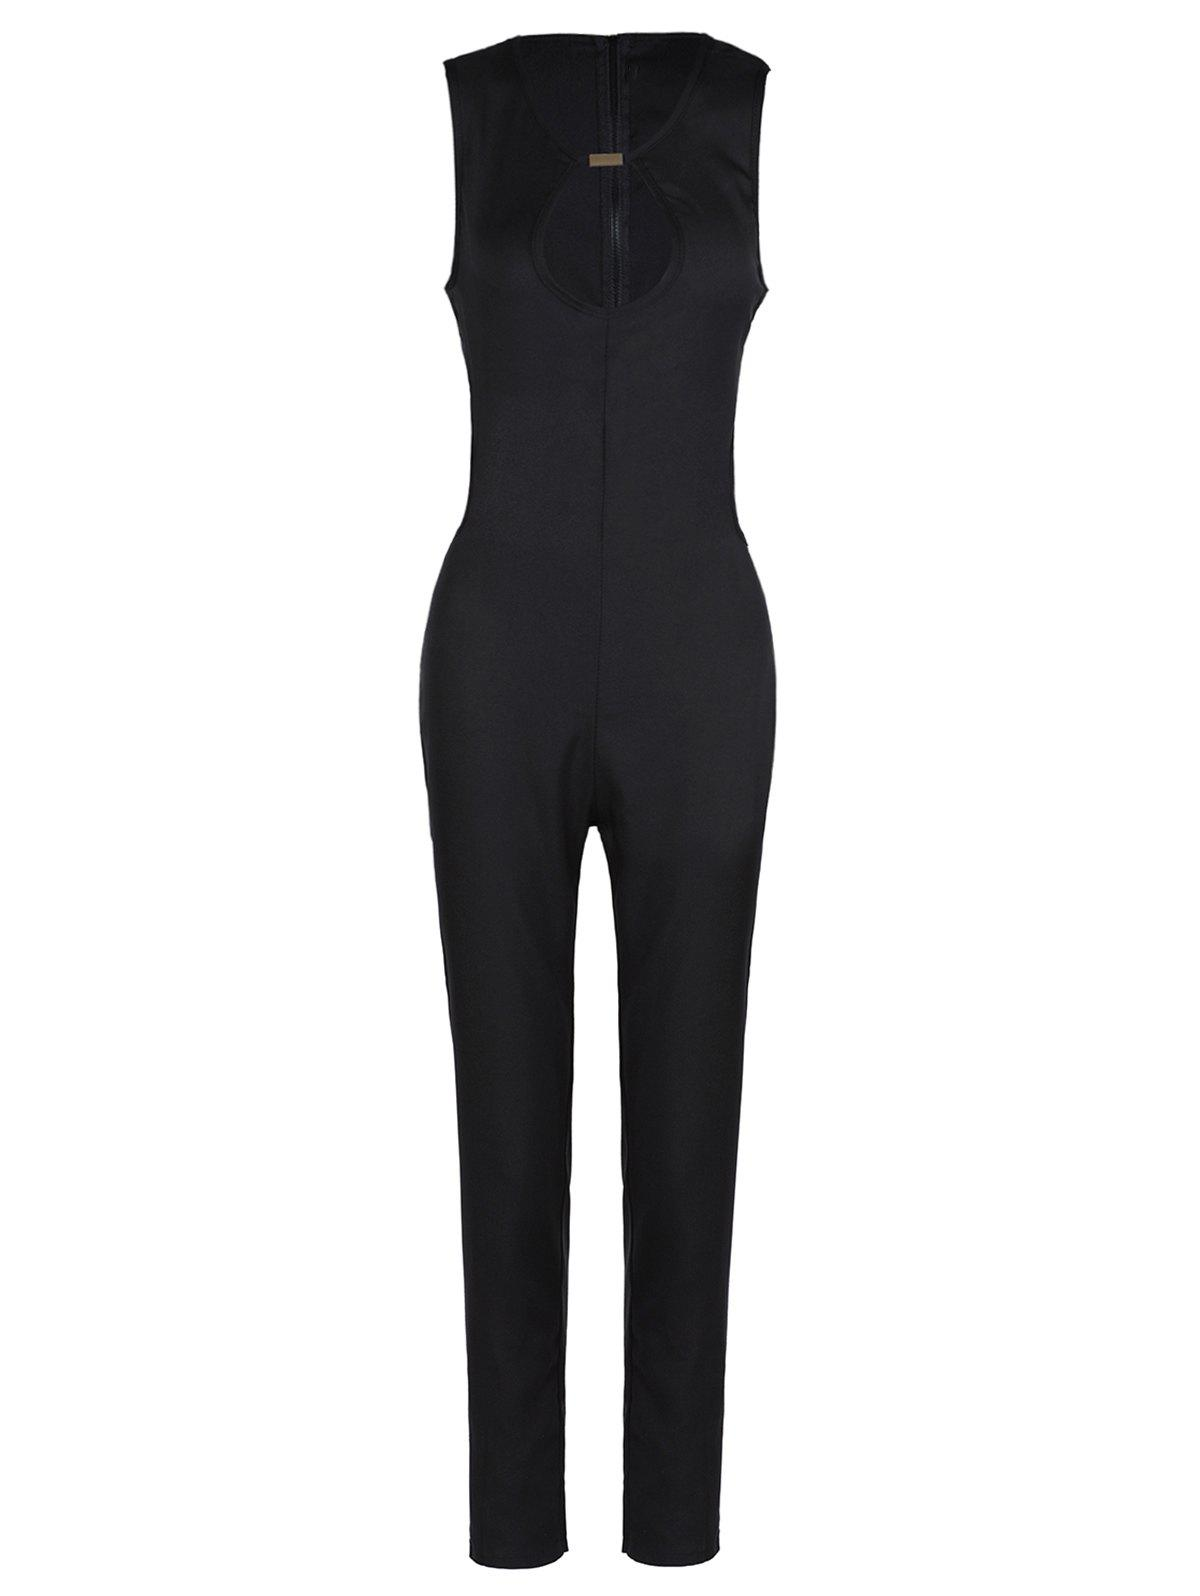 Sexy Sleeveless Round Neck Hollow Out Women's Jumpsuit - BLACK 2XL